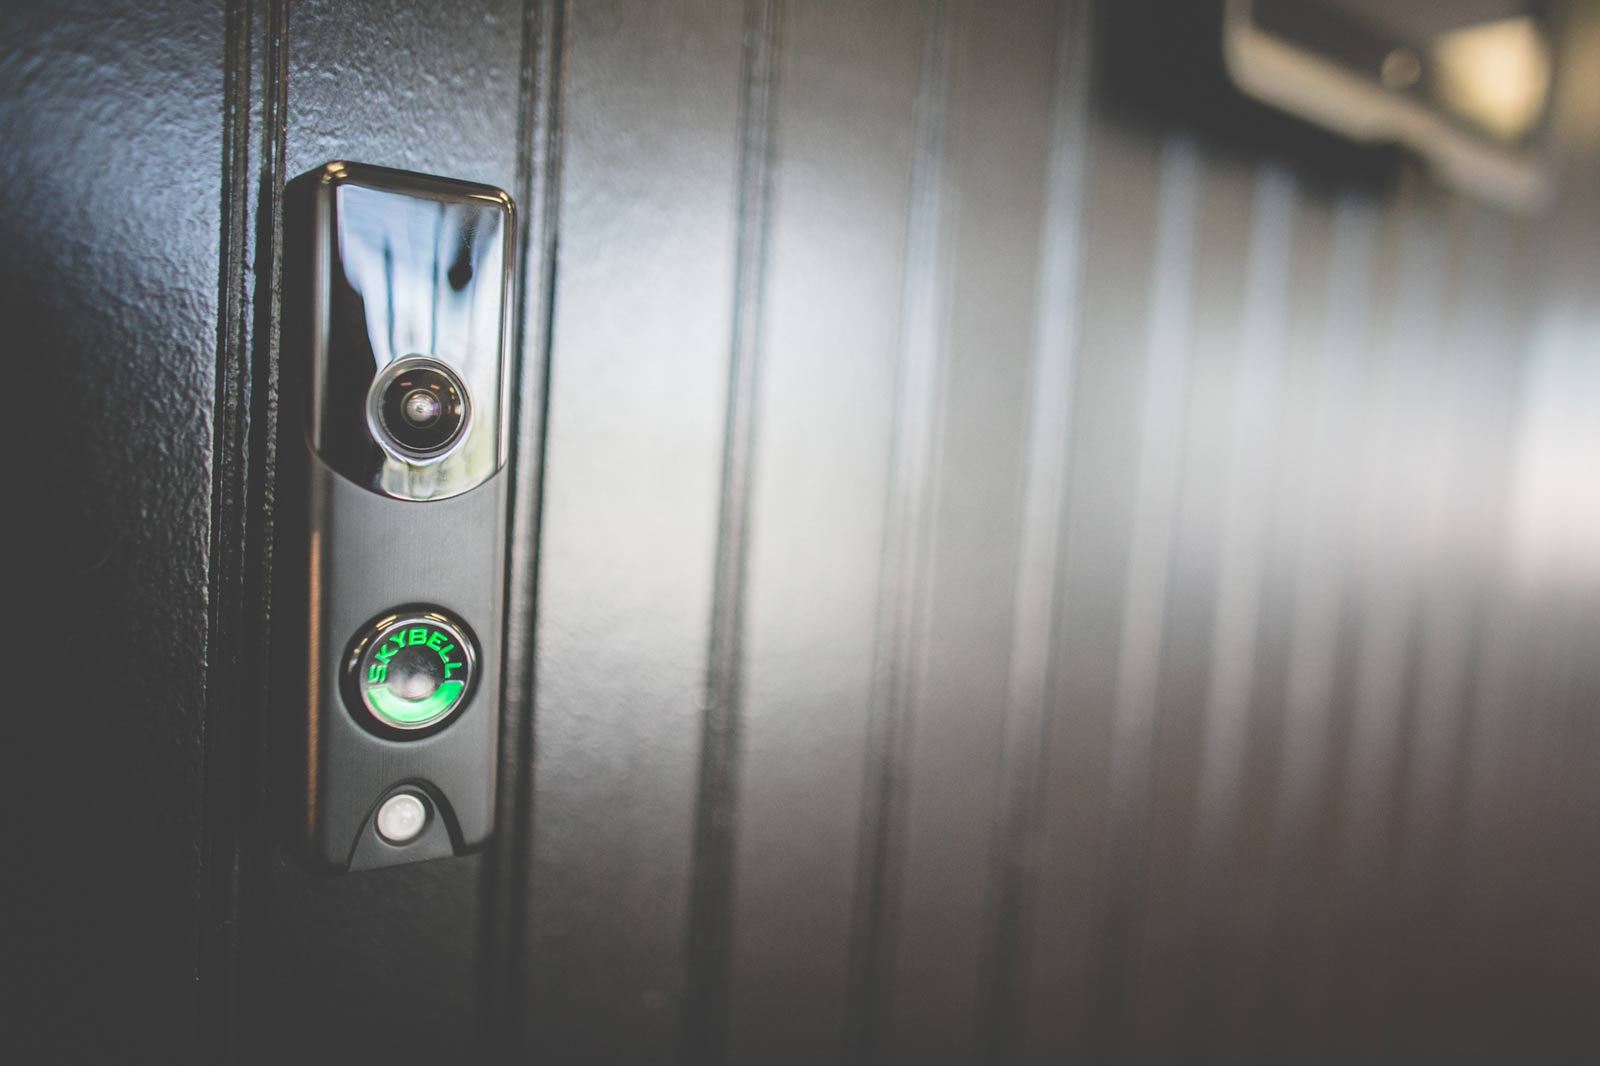 Things Every House Needs 6 reasons why every house needs a wi-fi video doorbell - security